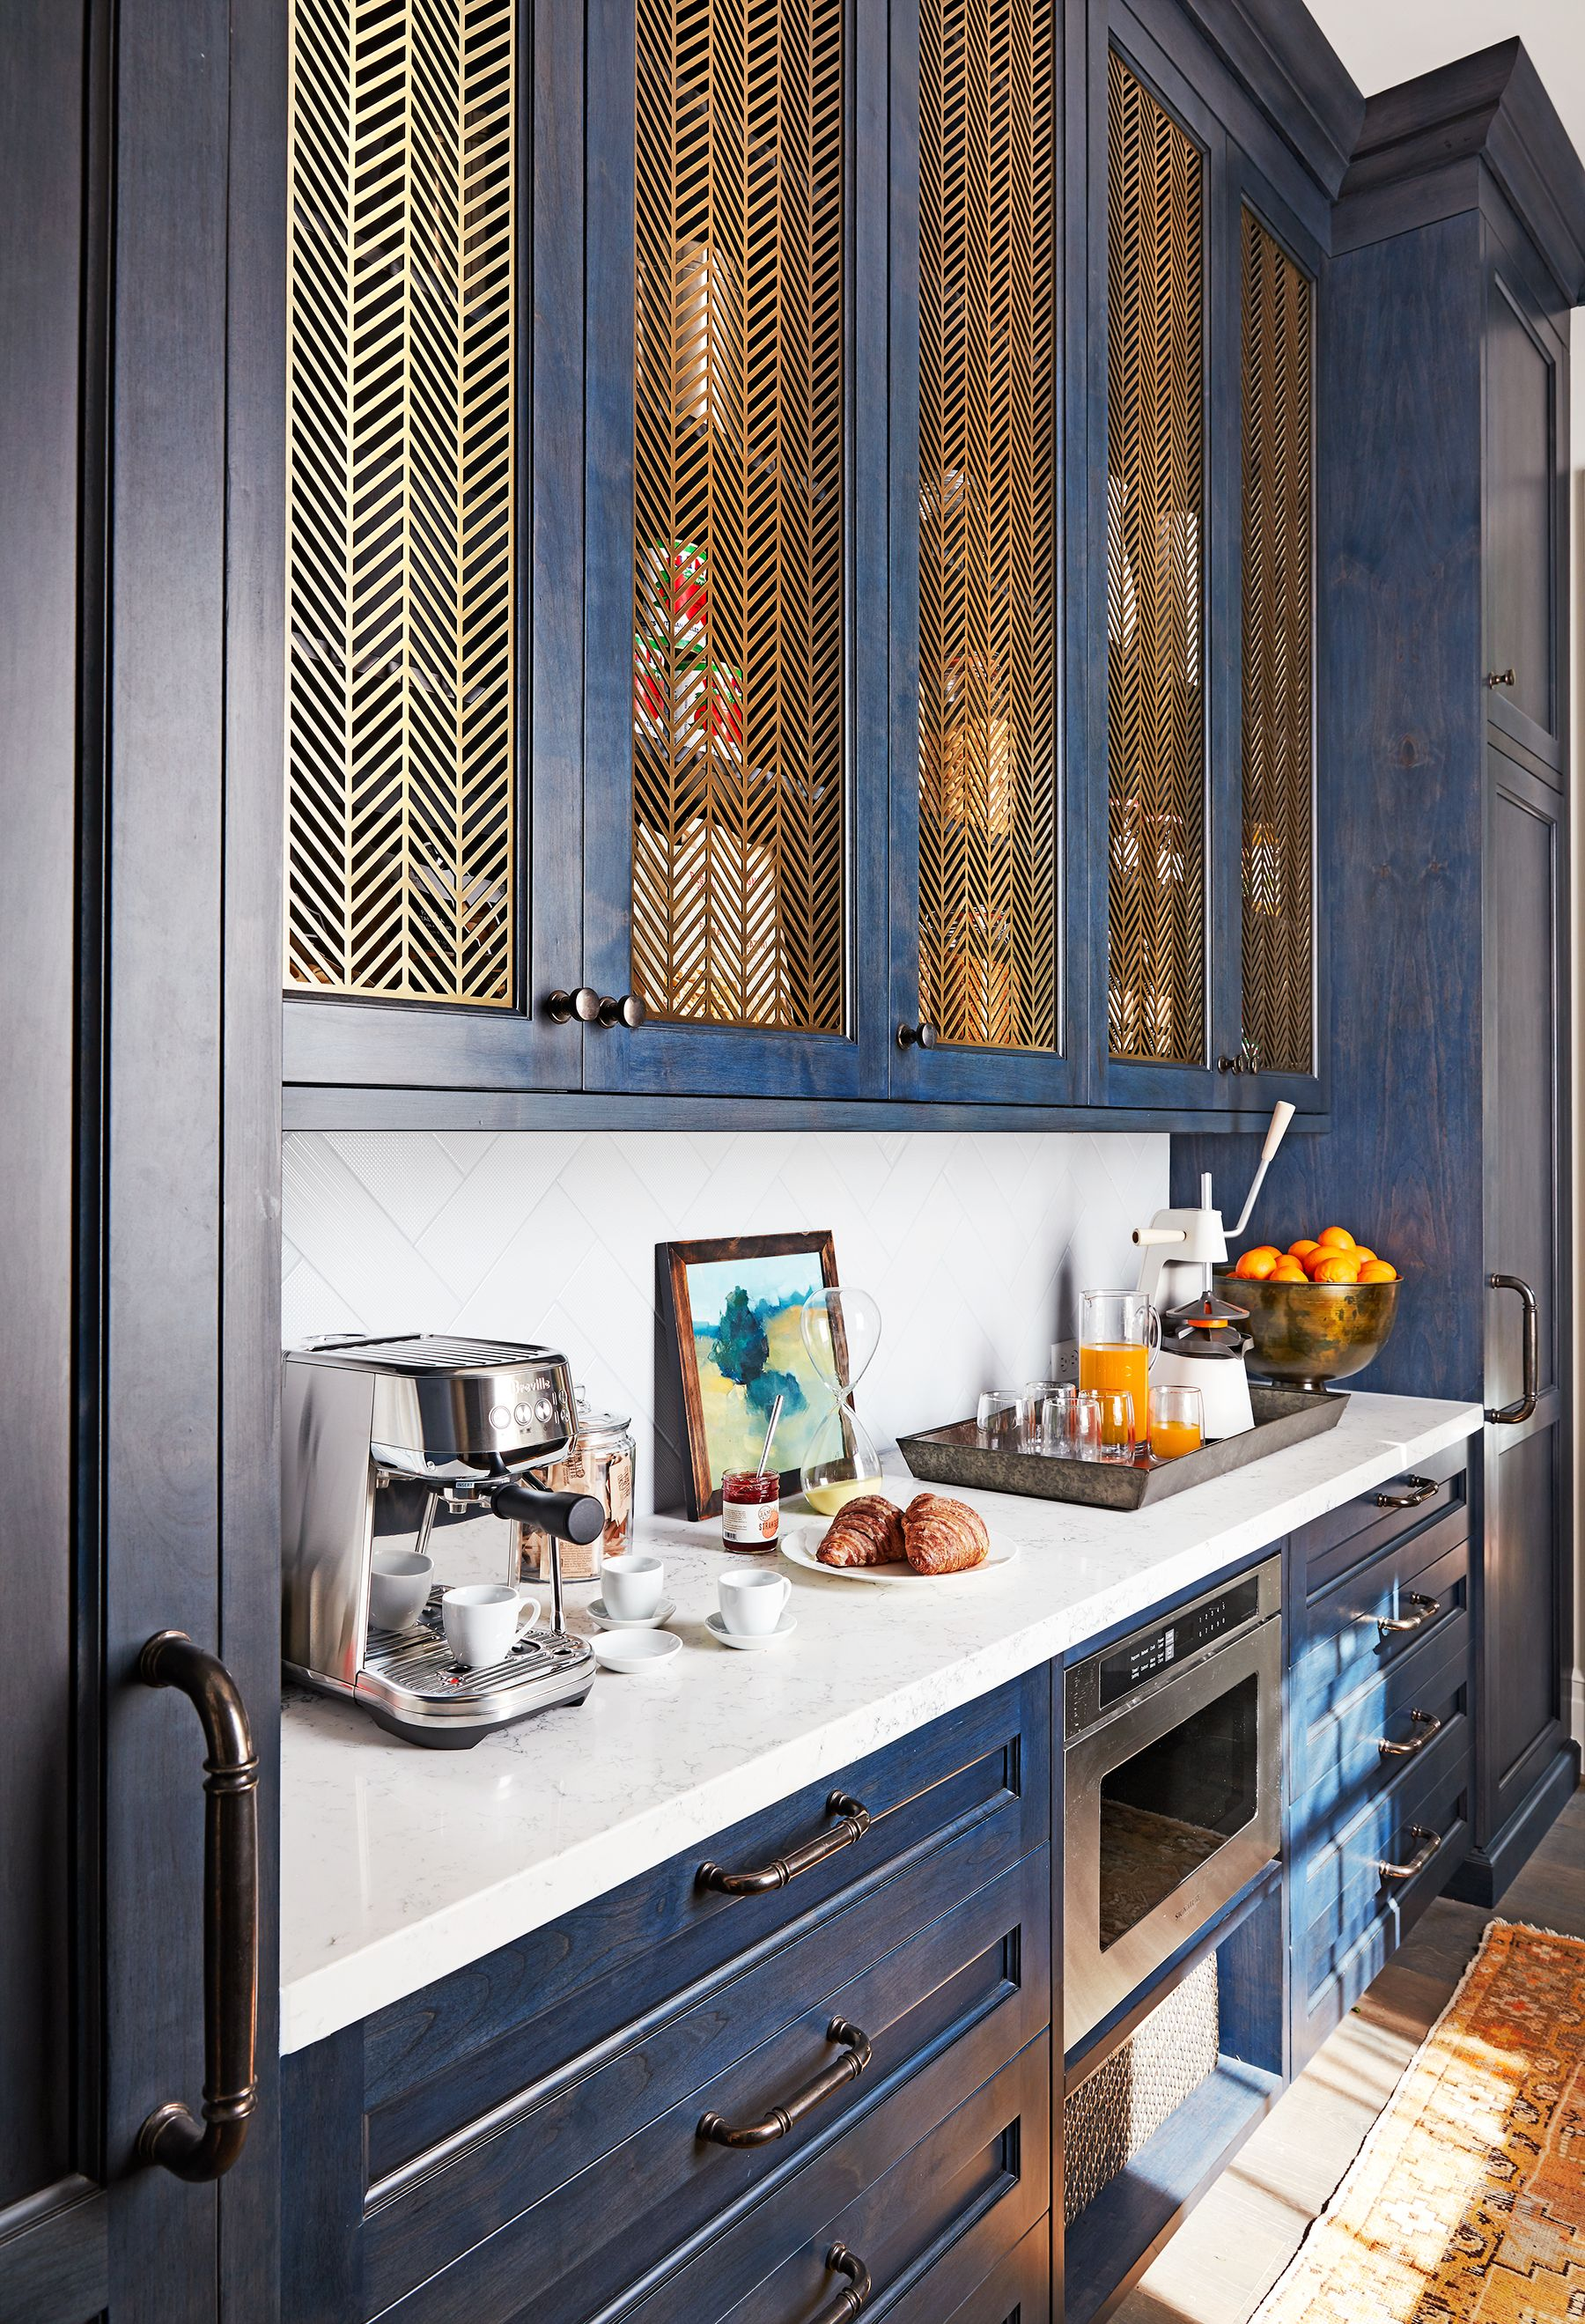 Metal Grate Cabinet Fronts Are Our Favorite Kitchen Trend